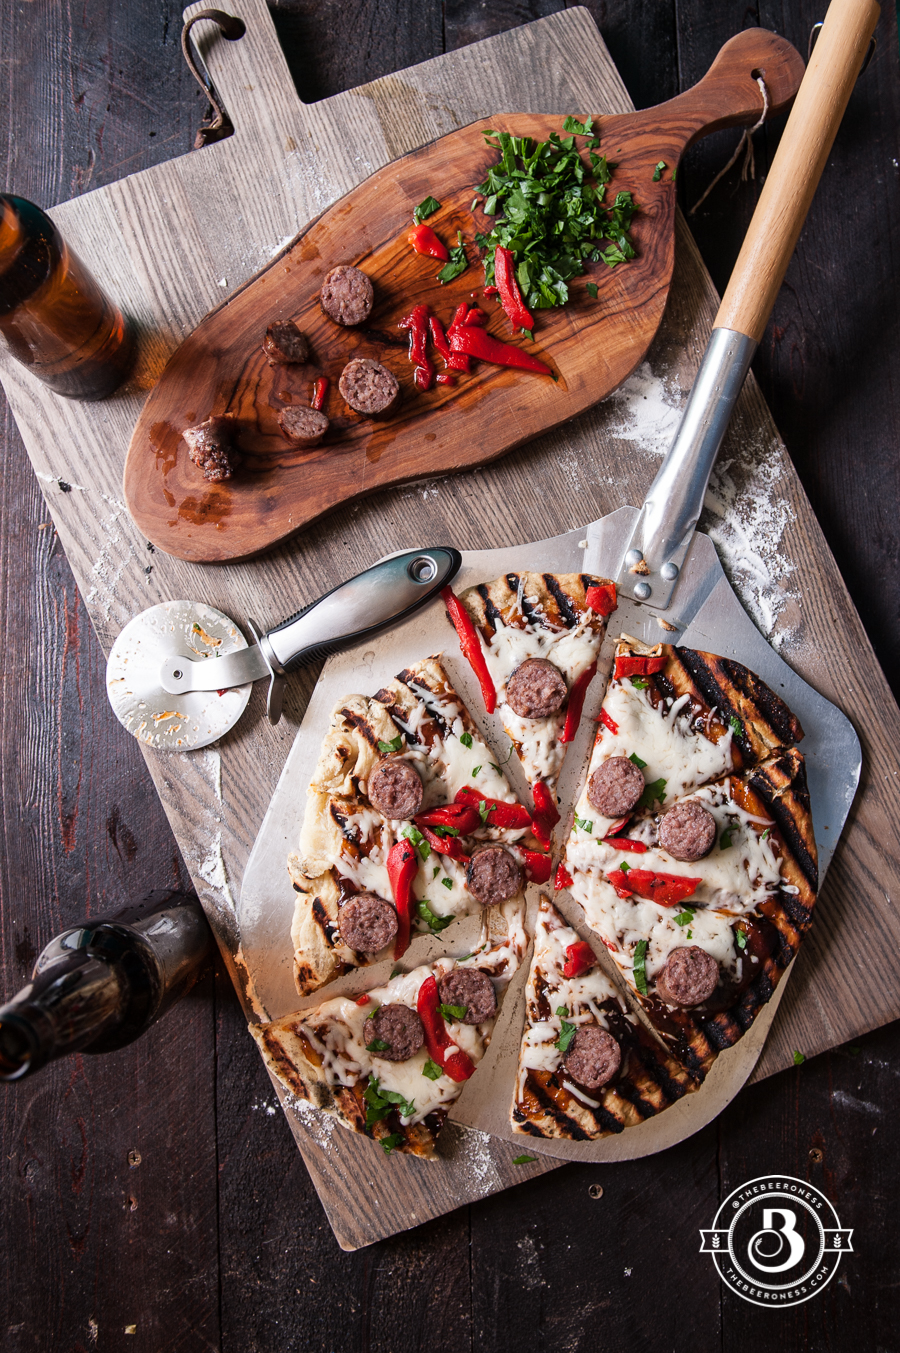 BBQ Beer Brat Tailgate Pizza & How To Prep A Grilled Pizza For Tailgating -6